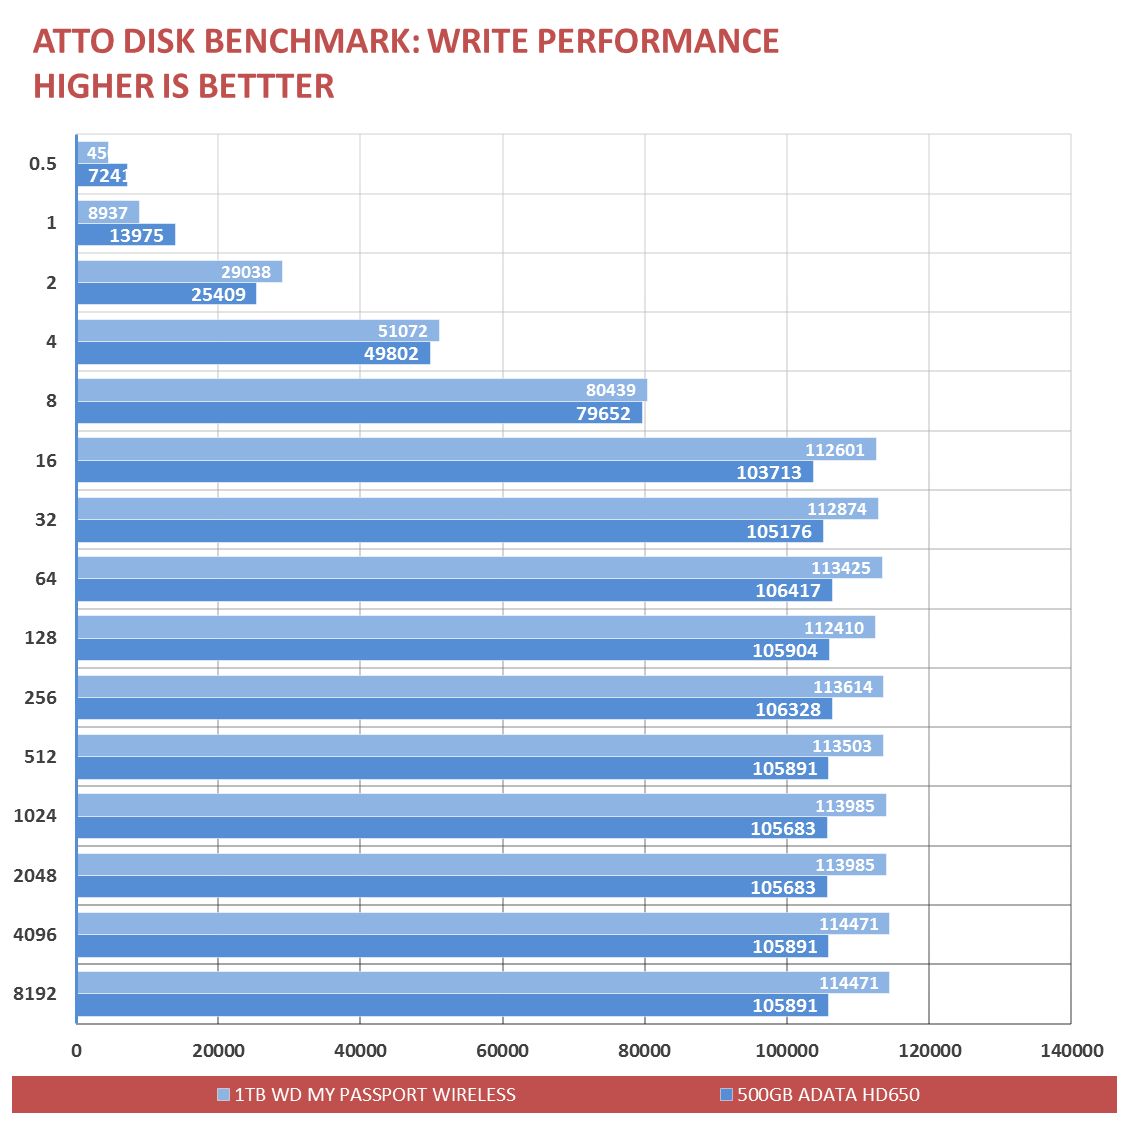 WD-My-Passport-Wireless-Benchmark-1